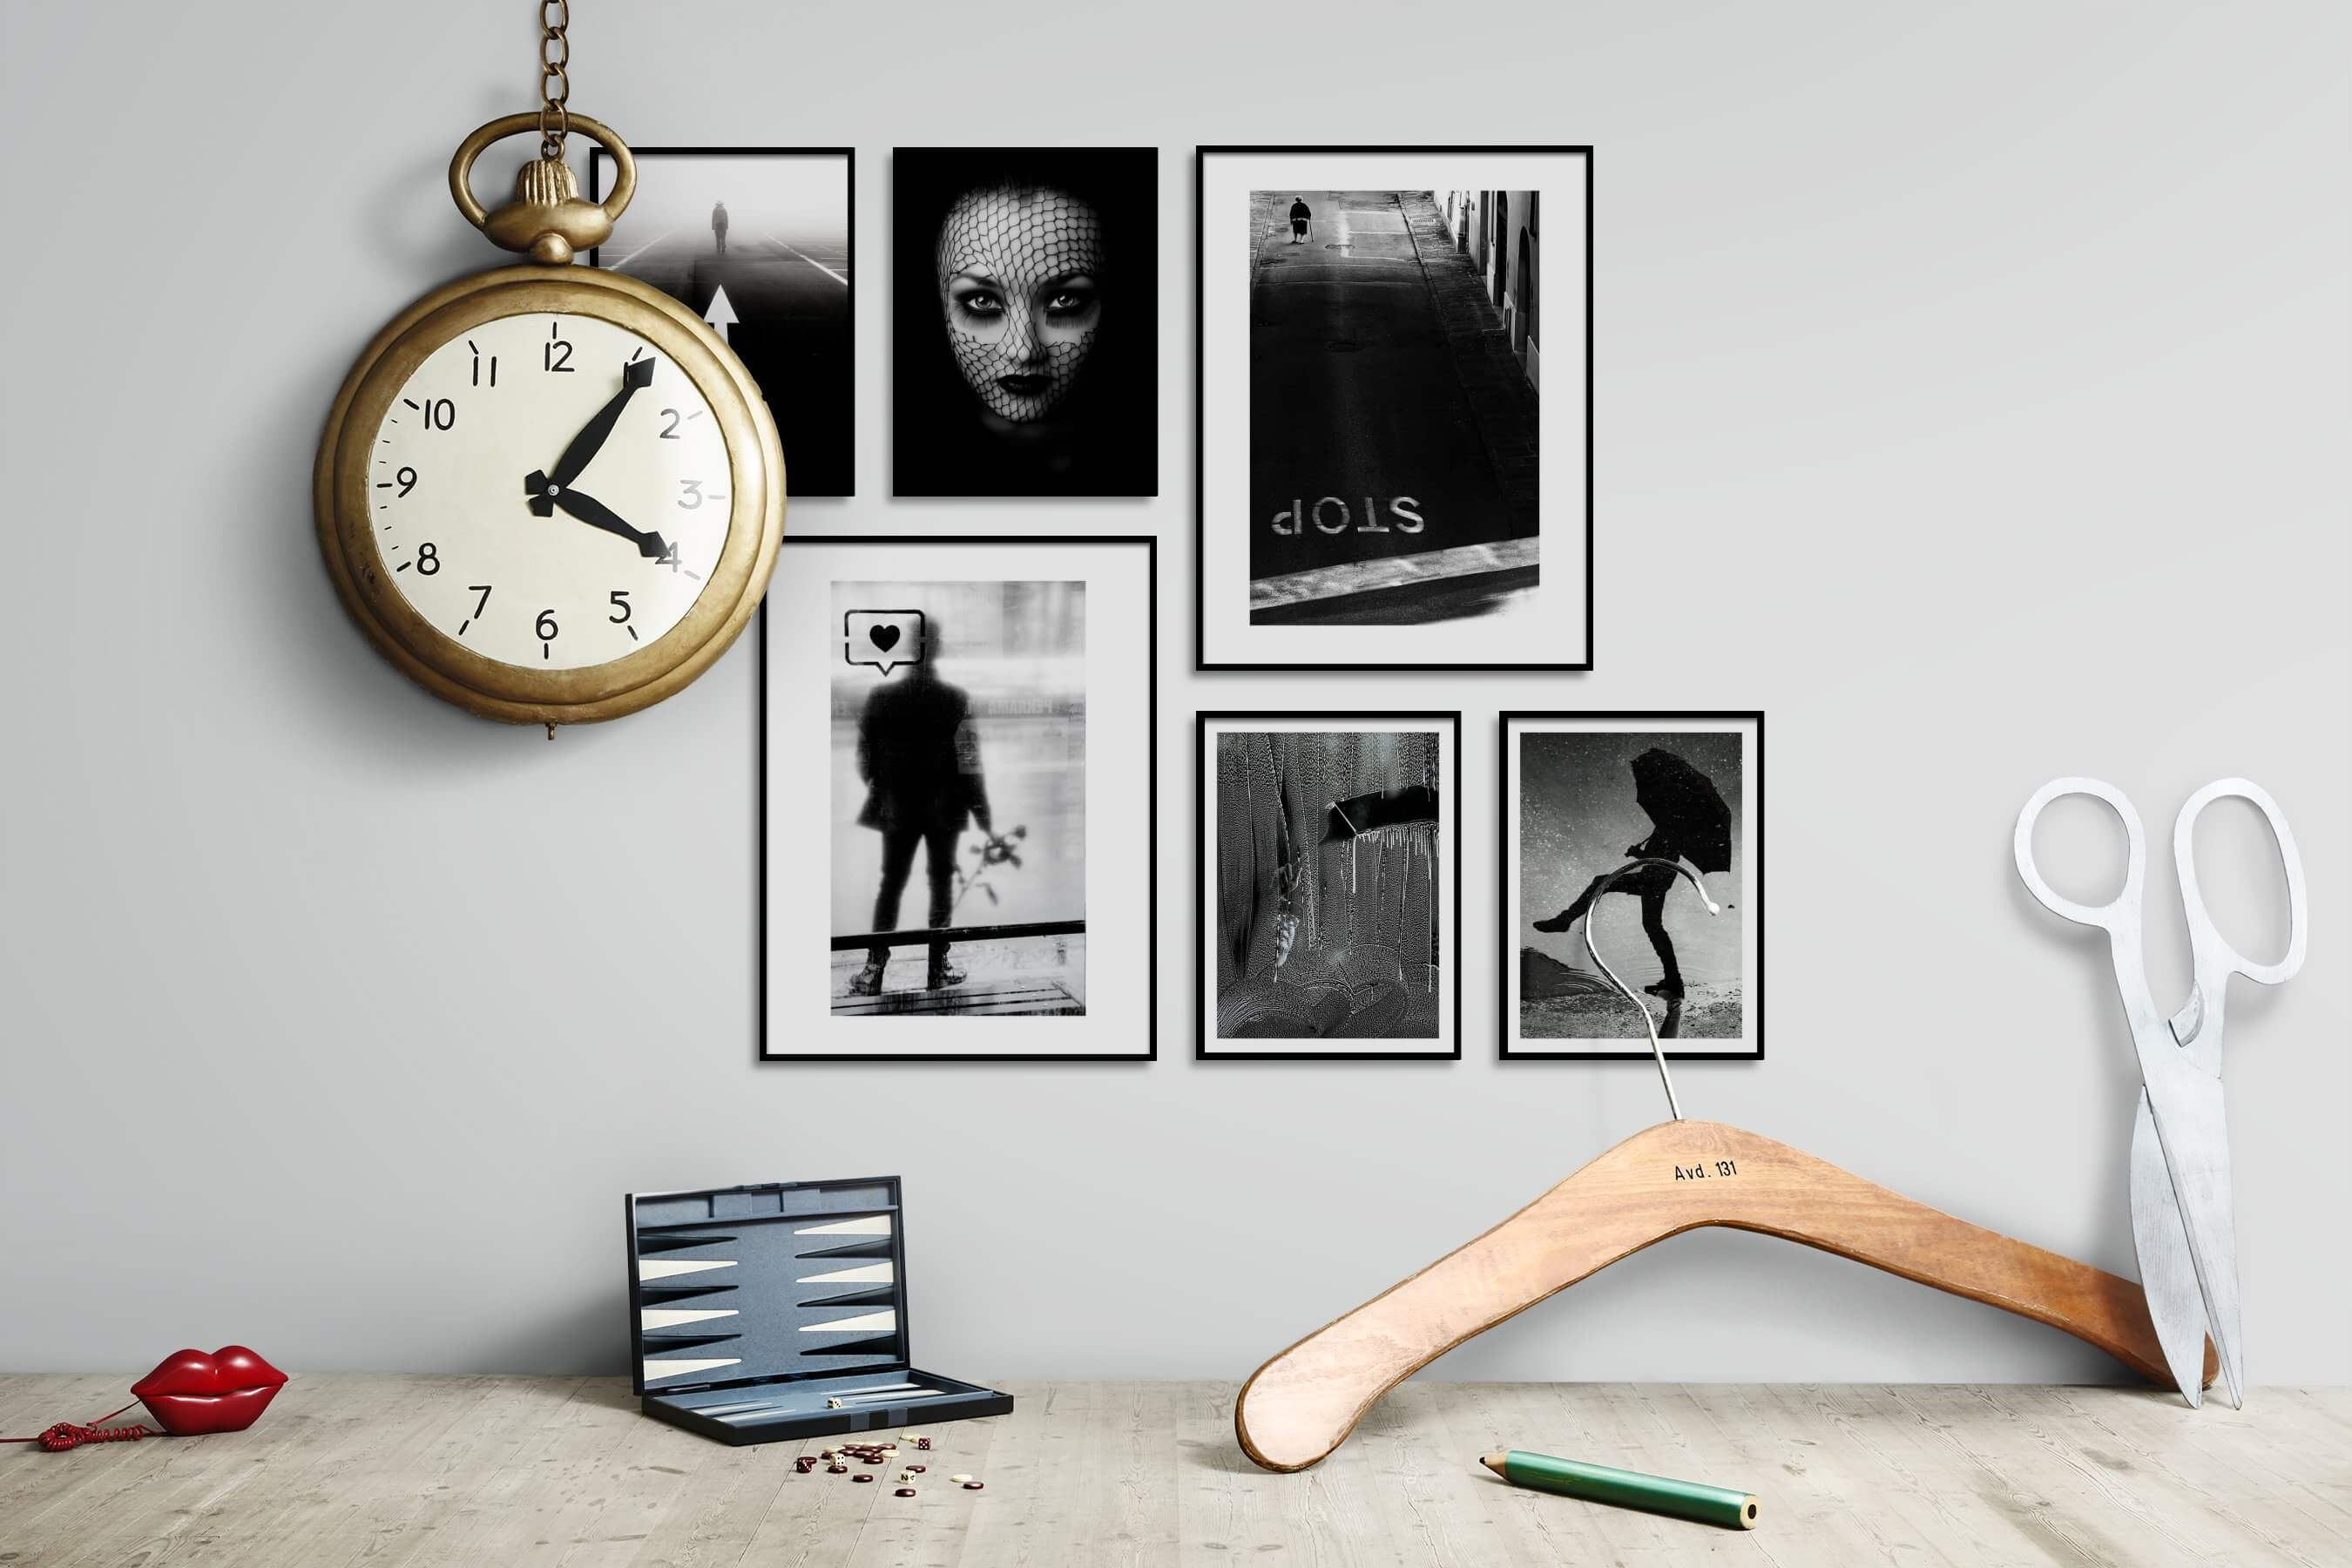 Gallery wall idea with six framed pictures arranged on a wall depicting Black & White, For the Moderate, Mindfulness, Fashion & Beauty, Dark Tones, For the Minimalist, Artsy, and City Life